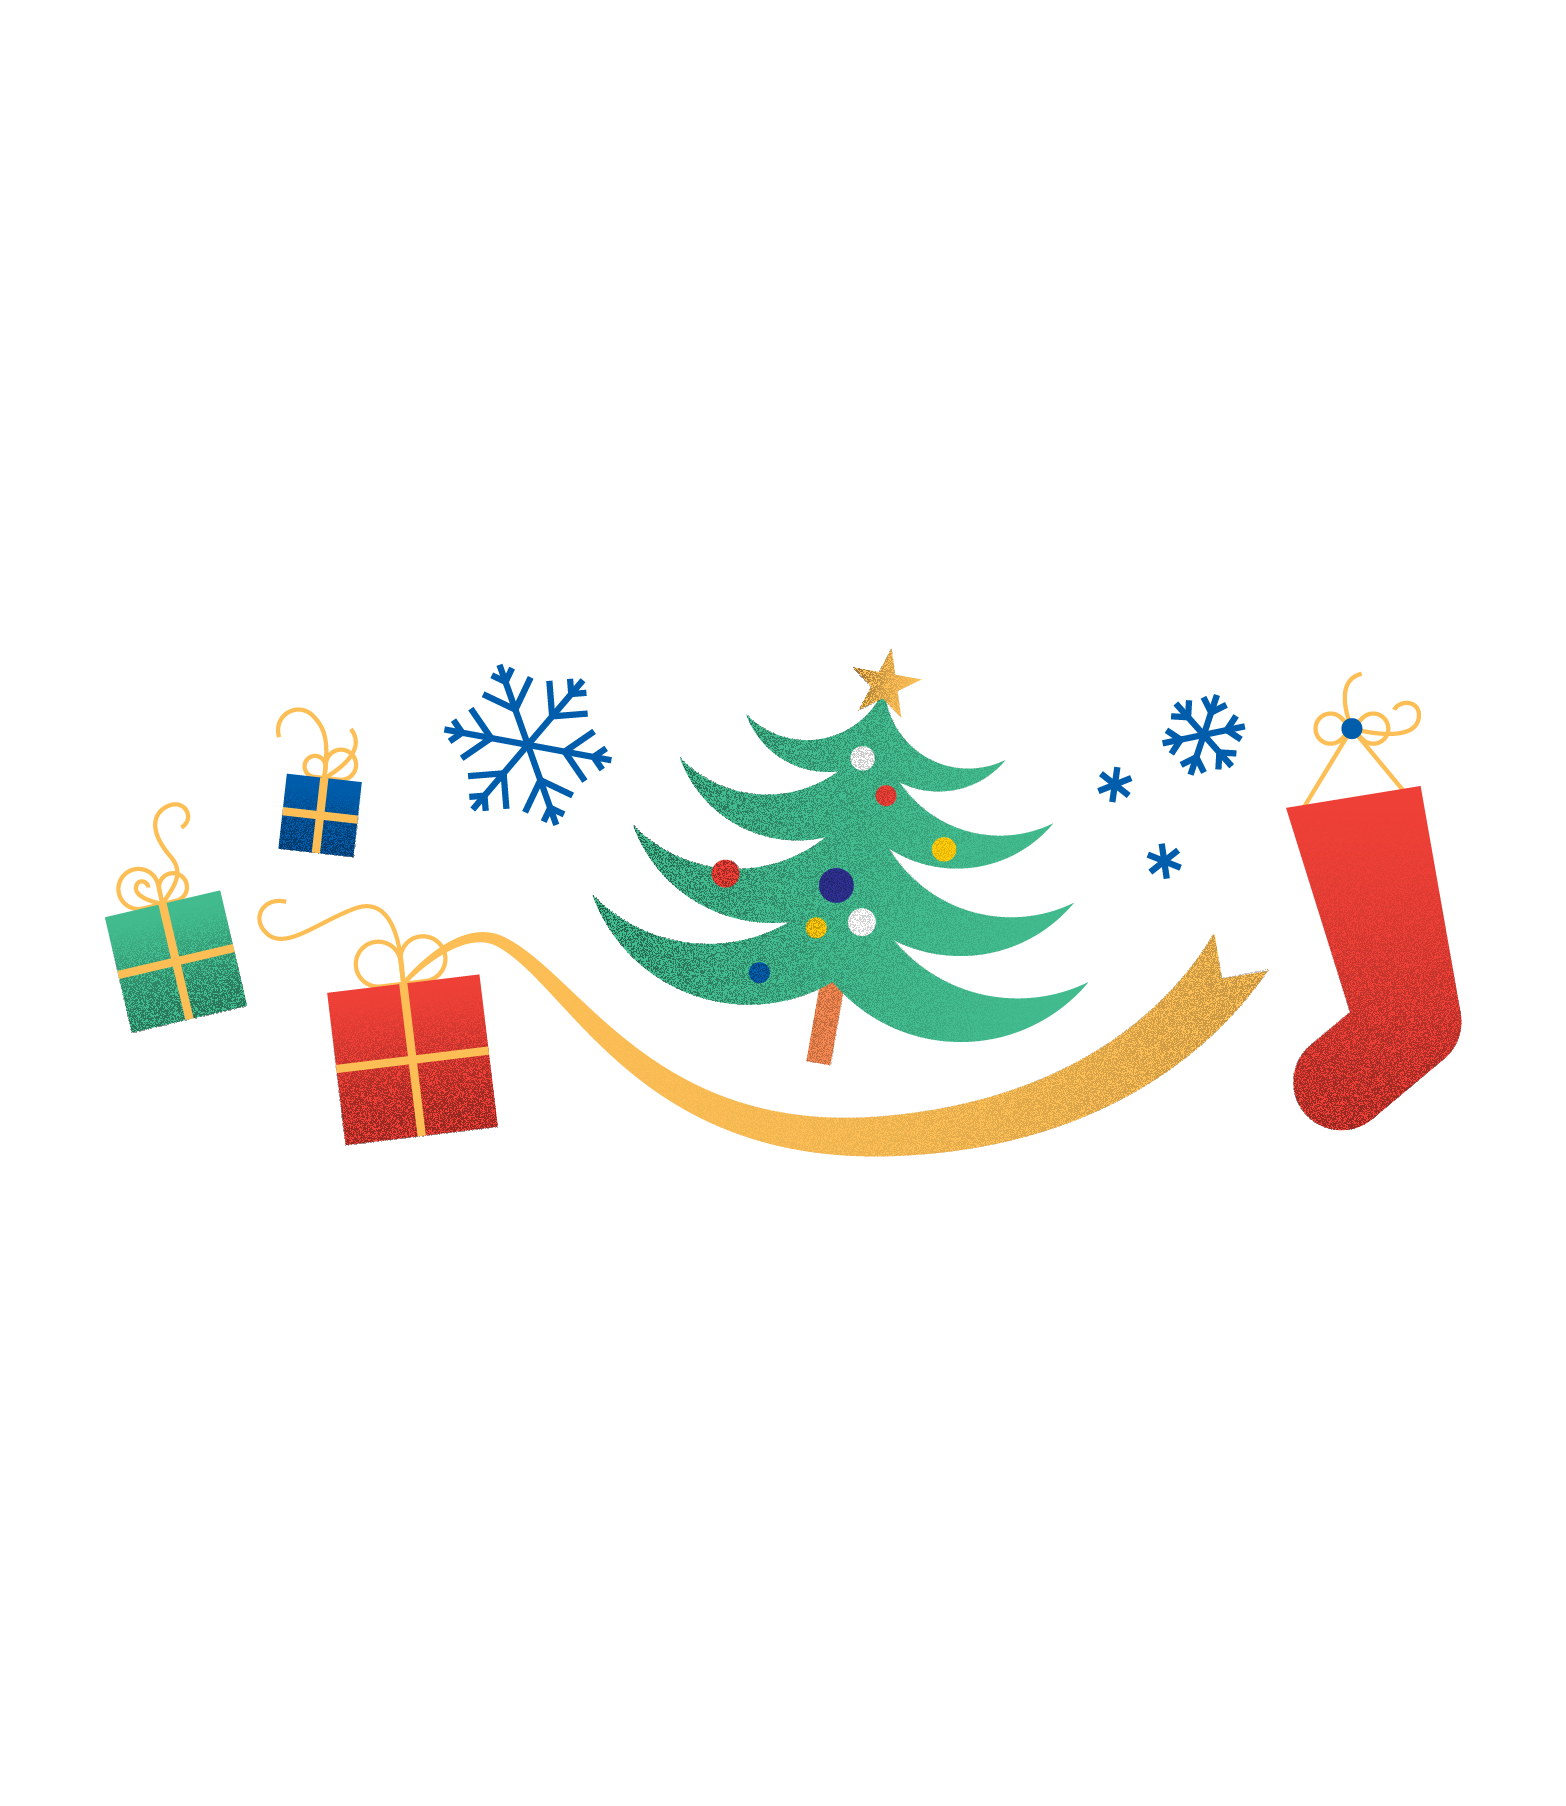 Illustration of a Christmas tree, snowflakes, a stocking, and presents (75)